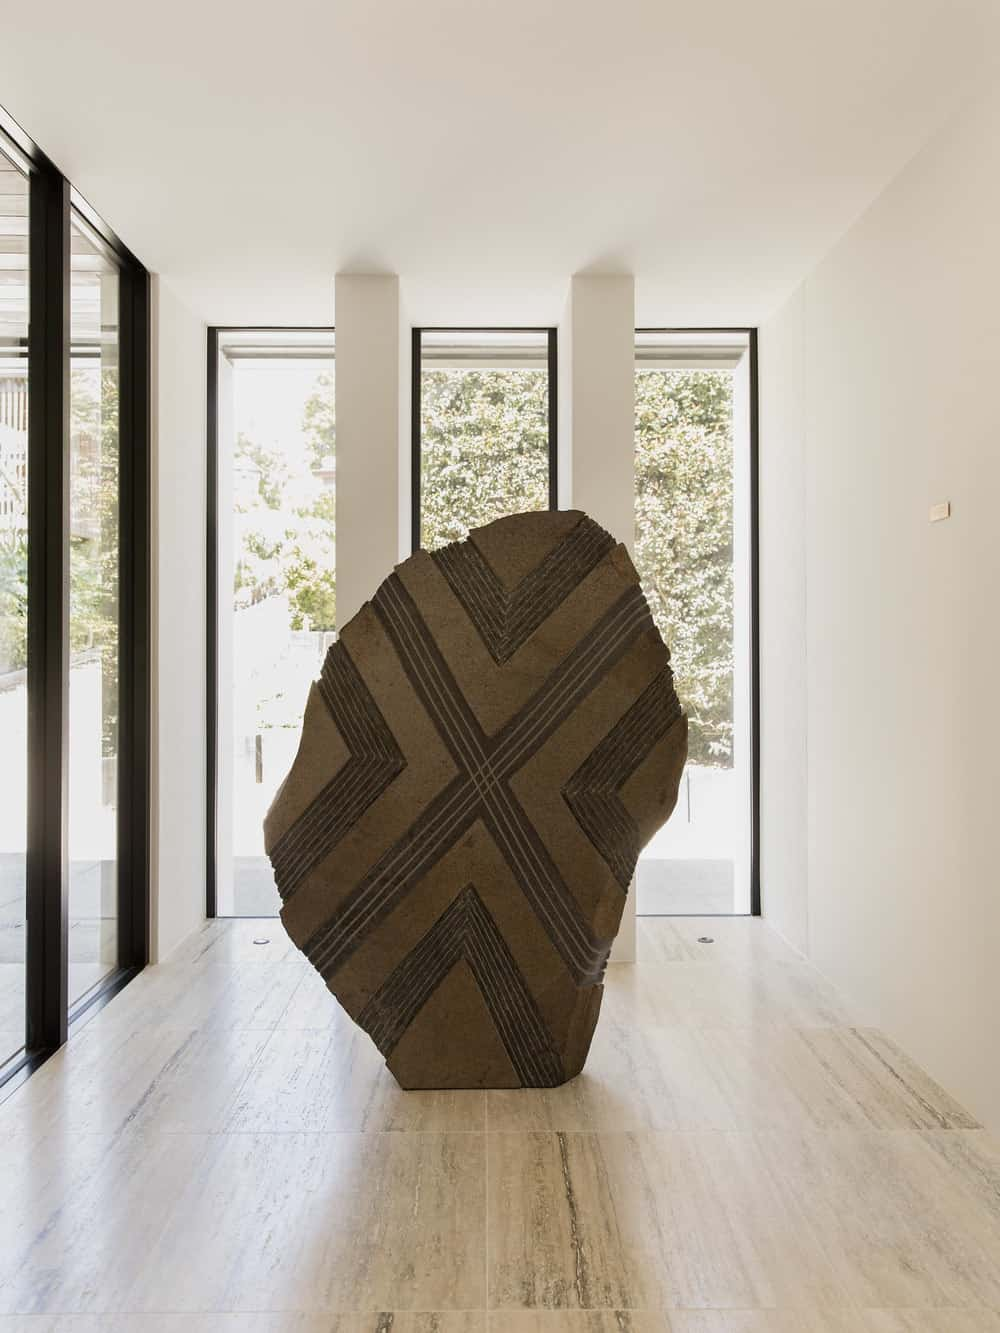 Foyer in the Herne Bay Hideaway designed by Lloyd Hartley Architects.